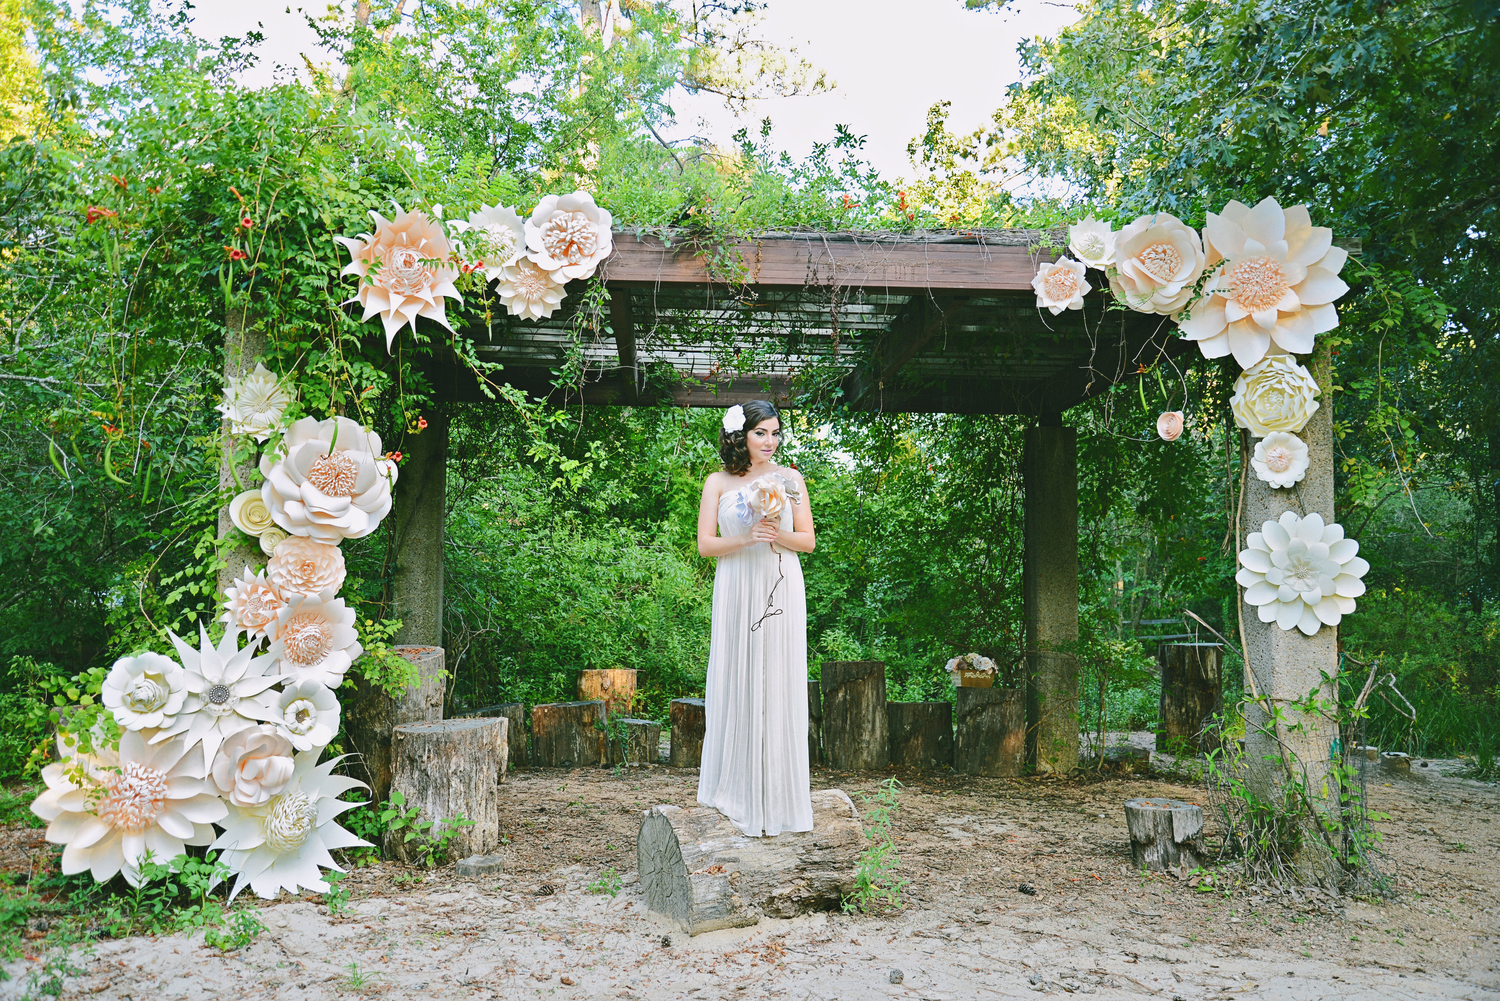 Wedding Florist in Houston – Balushka Paper Floral Artistry